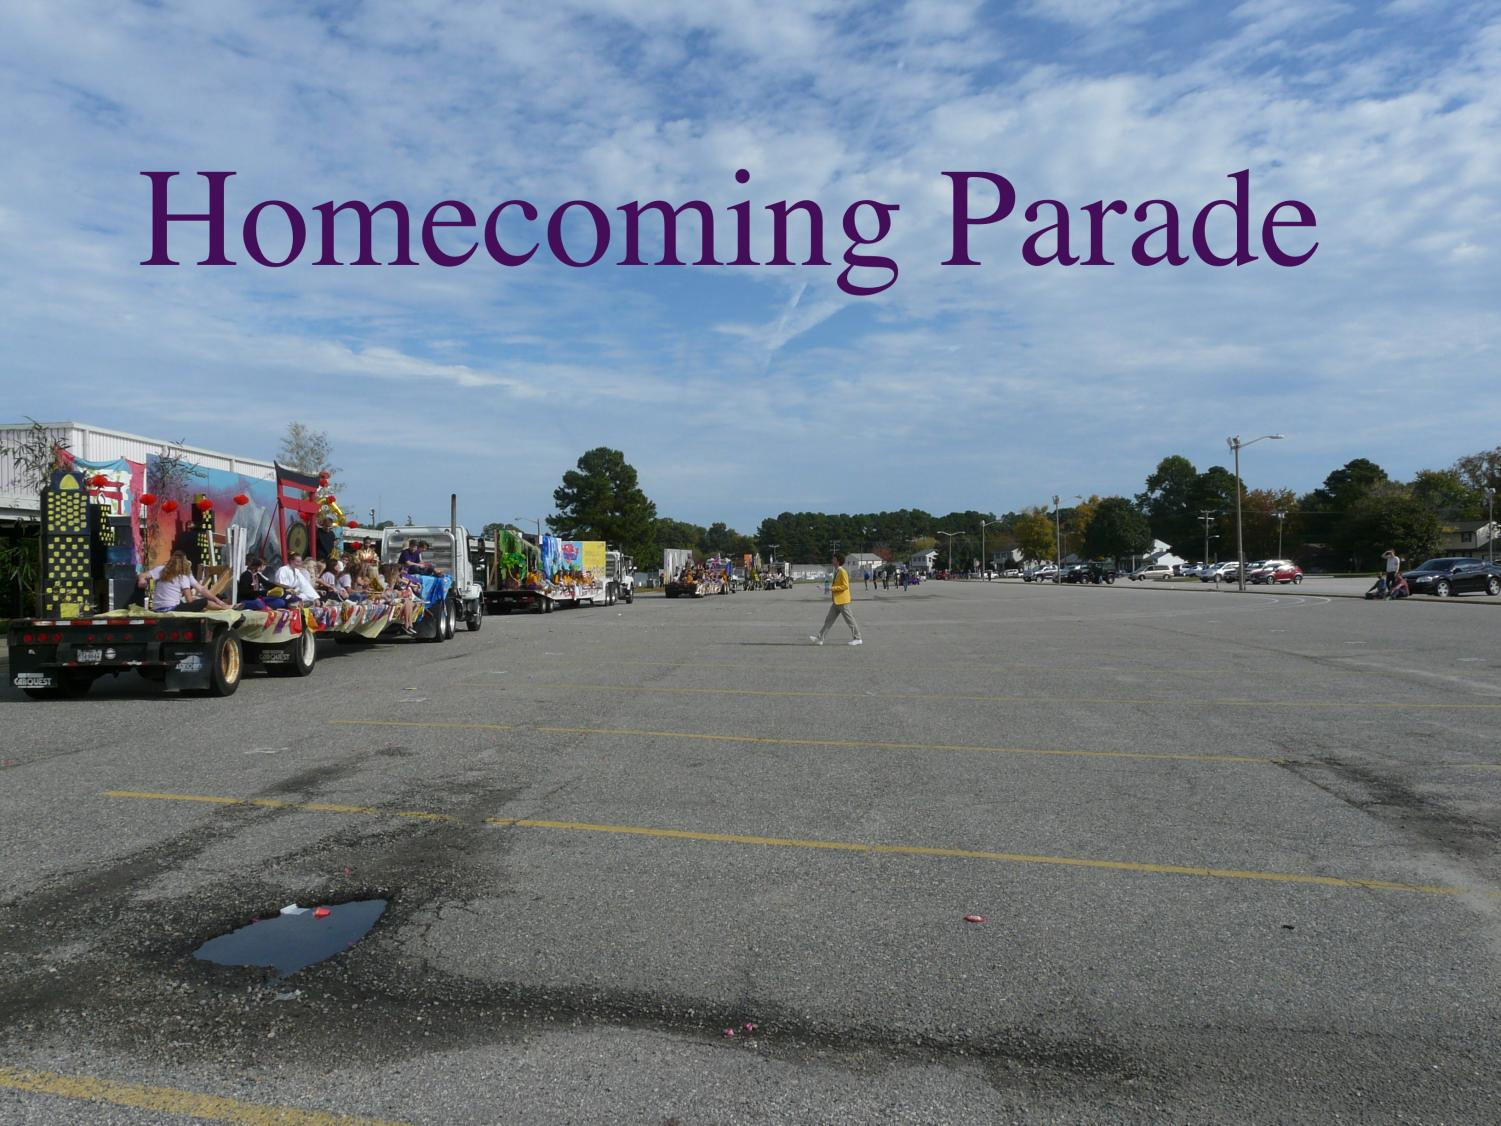 The+parade+floats+line+the+Menchville+parking+lot+for+Homecoming+on+Saturday.